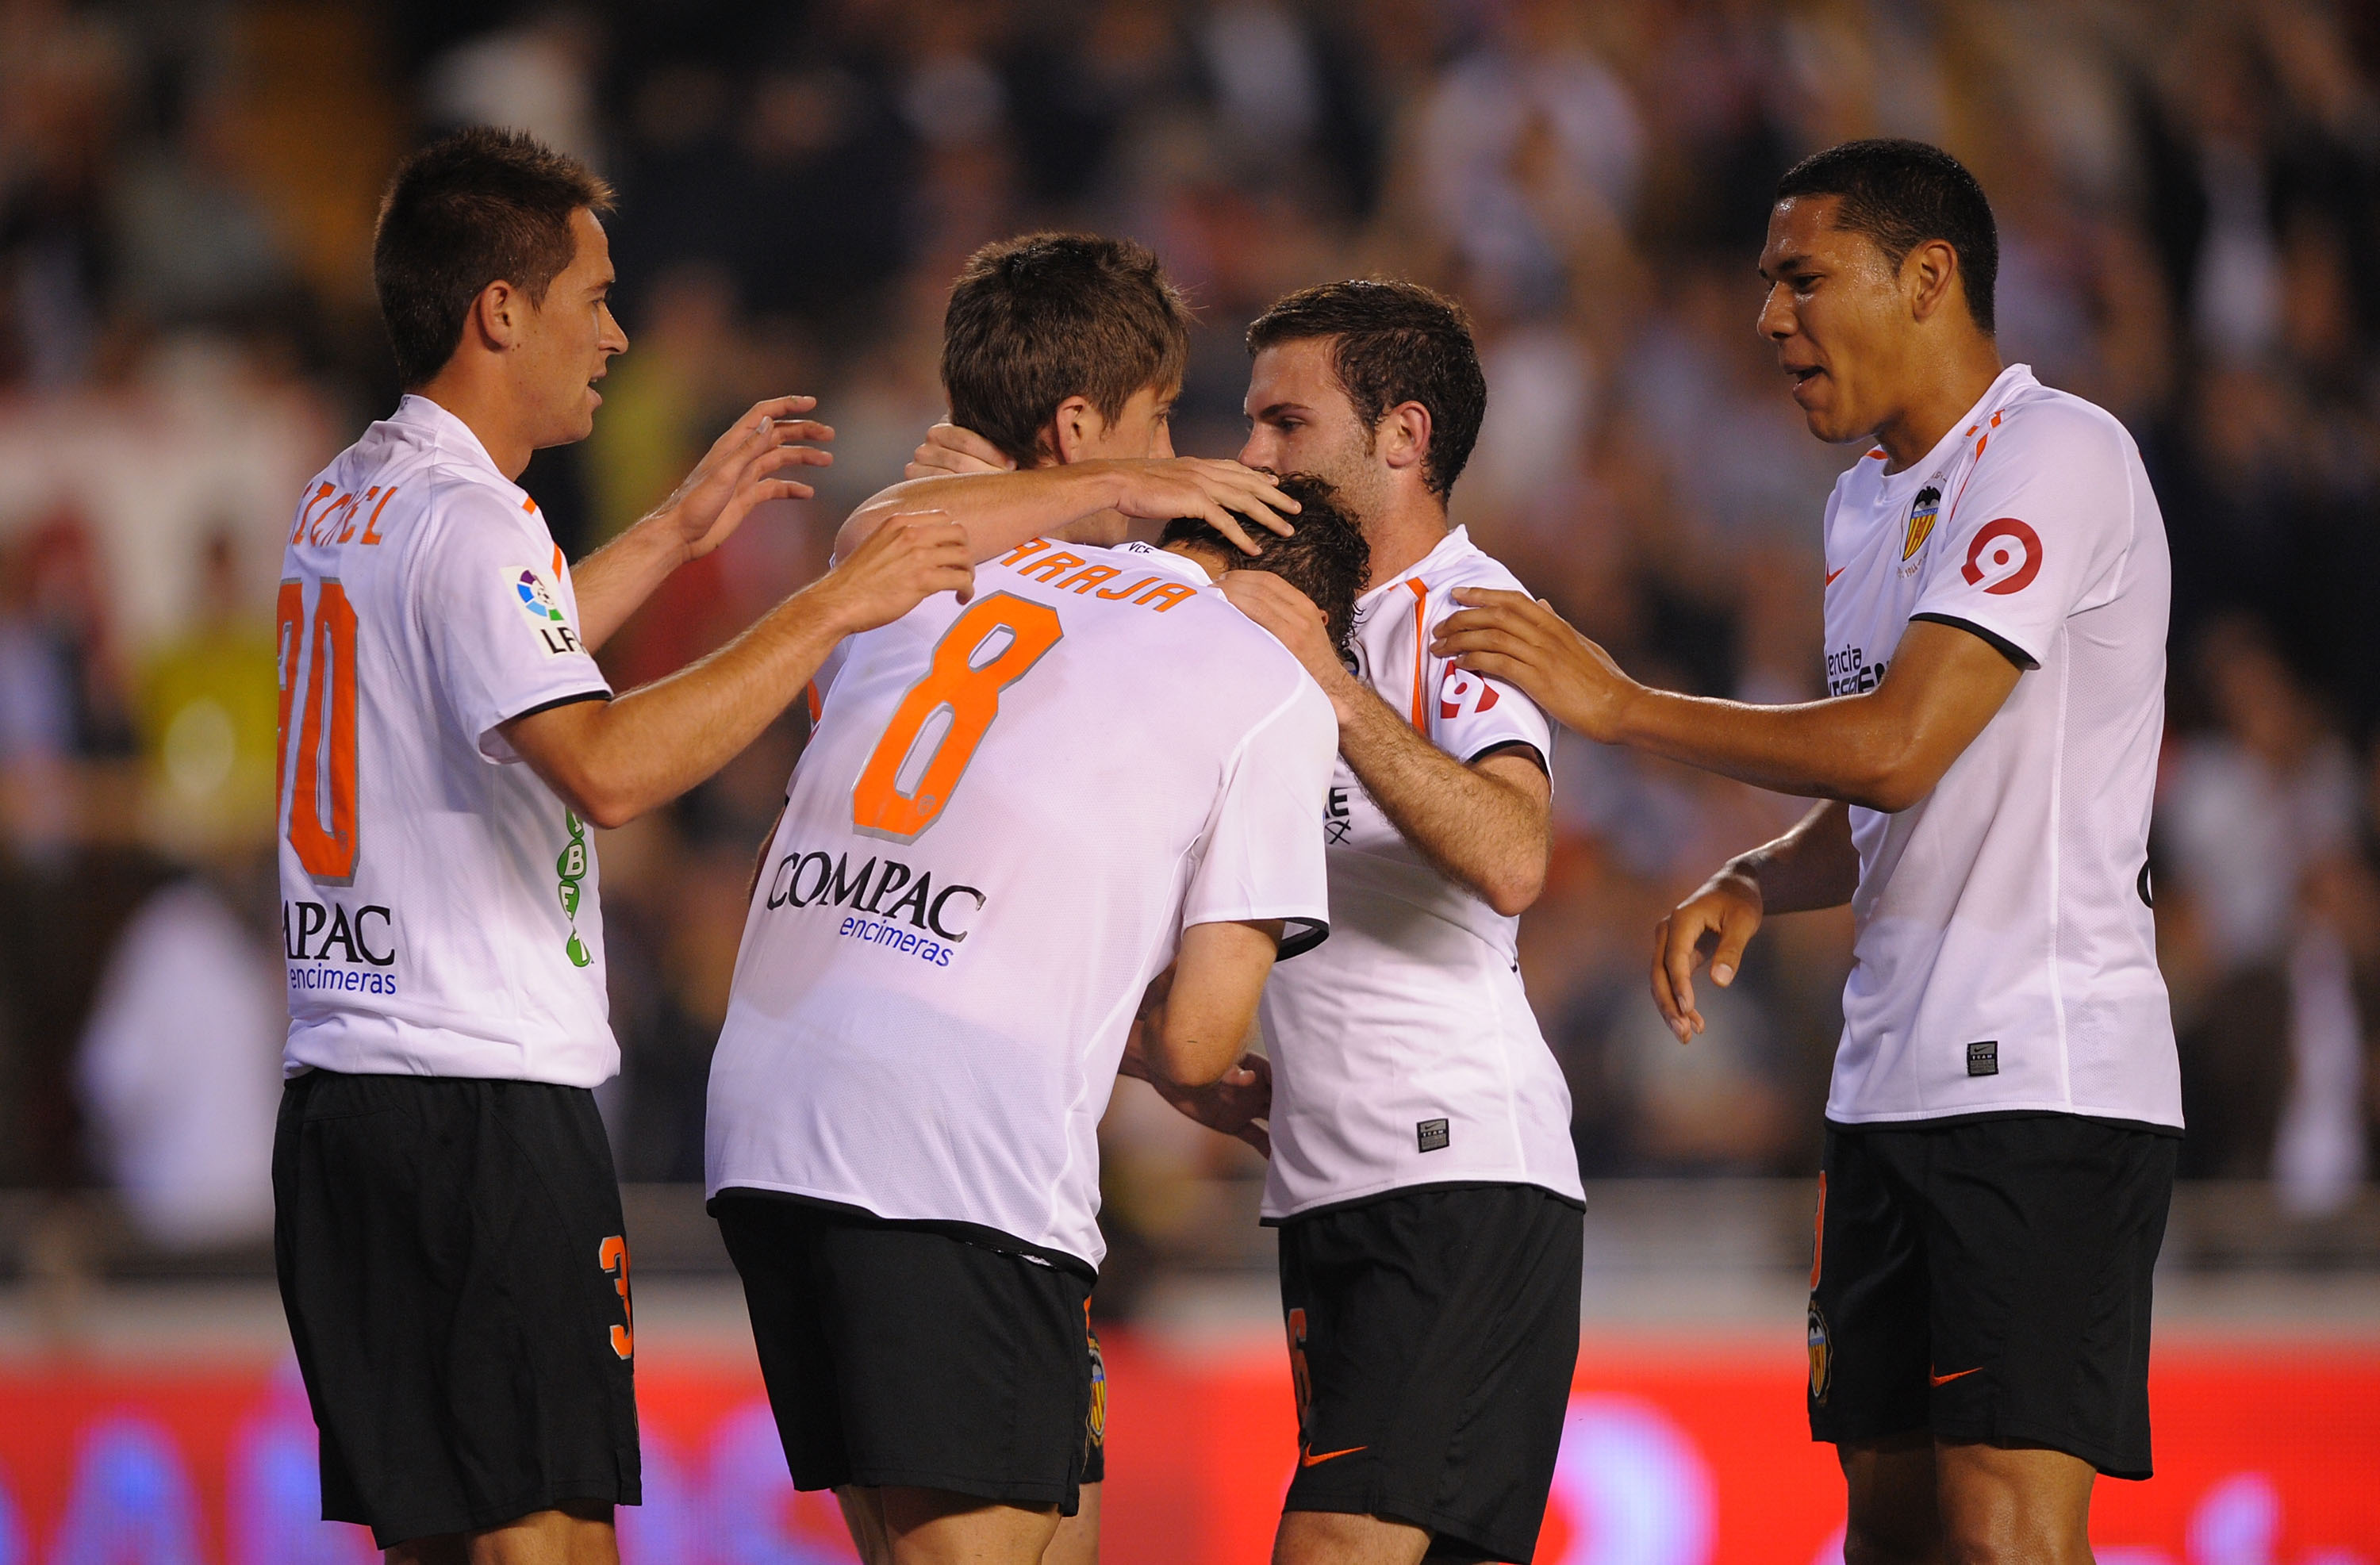 VALENCIA, SPAIN - MAY 09:  Ruben Baraja (#8) of Valencia celerbrates after scoring his team's third goal during the La Liga match between Valencia and Real Madrid at the Mestalla Stadium on May 9, 2009 in Valencia, Spain.  (Photo by Denis Doyle/Getty Imag